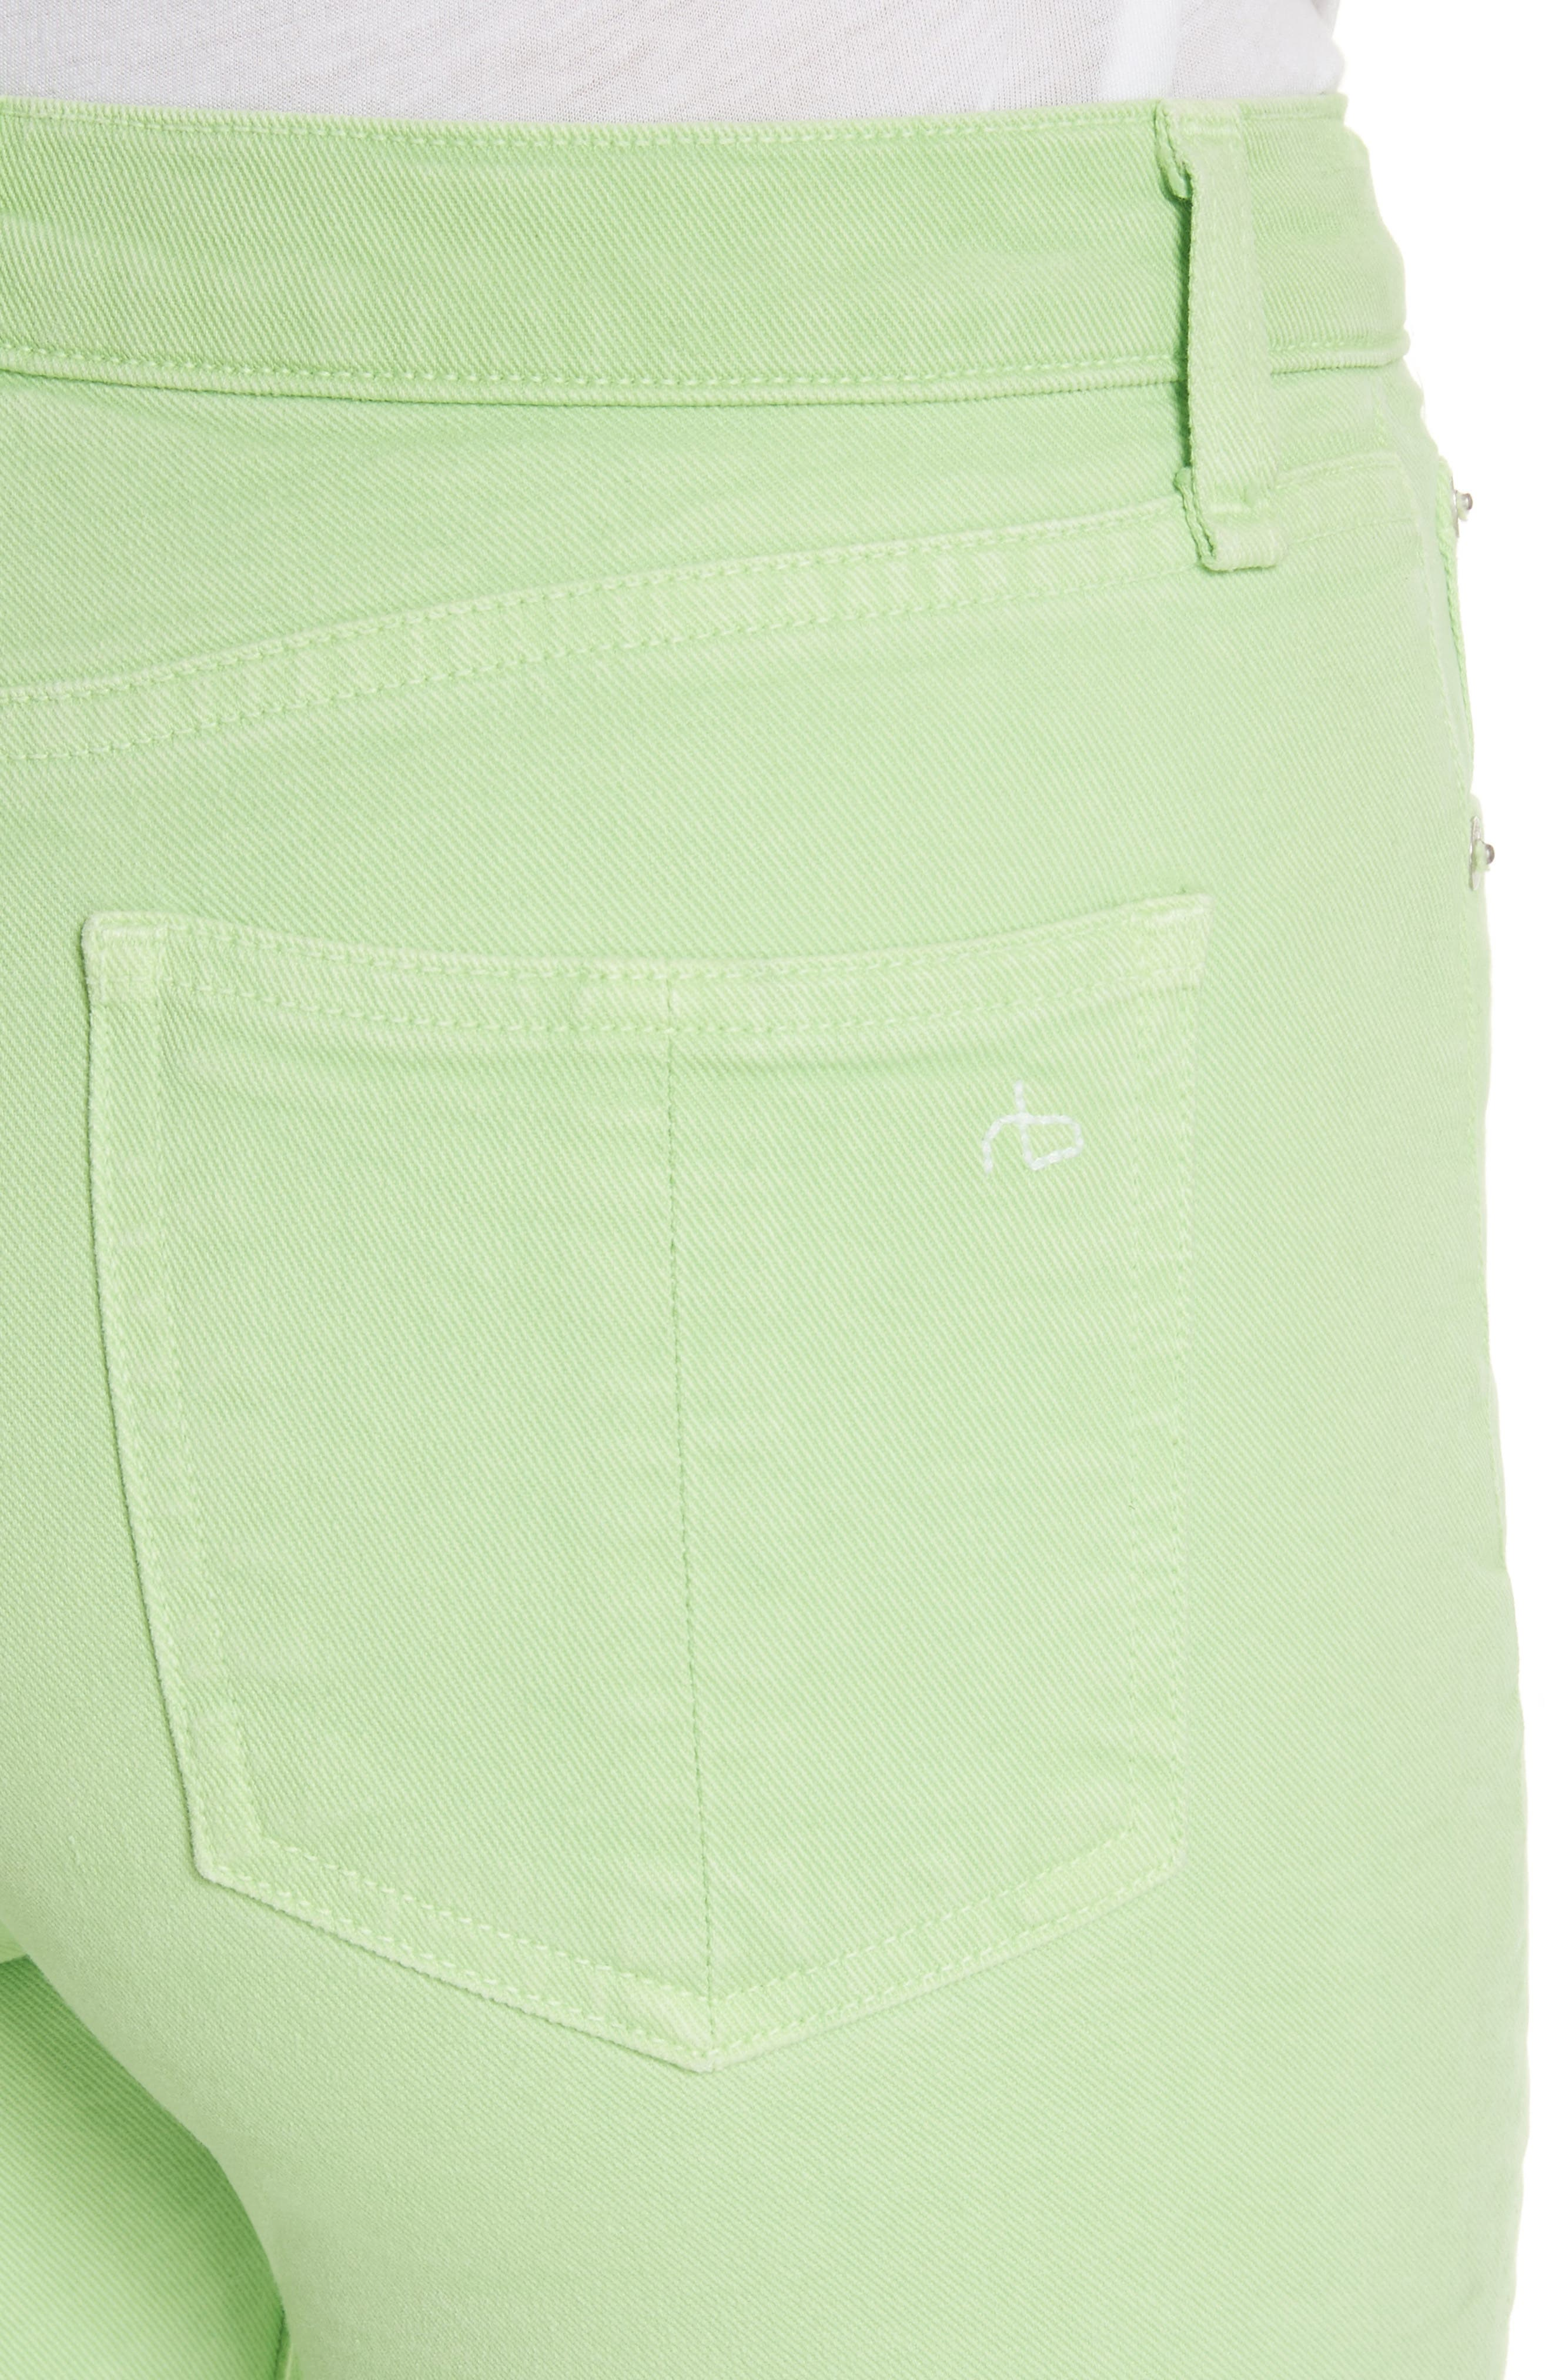 High Rise Skinny Jeans,                             Alternate thumbnail 4, color,                             371